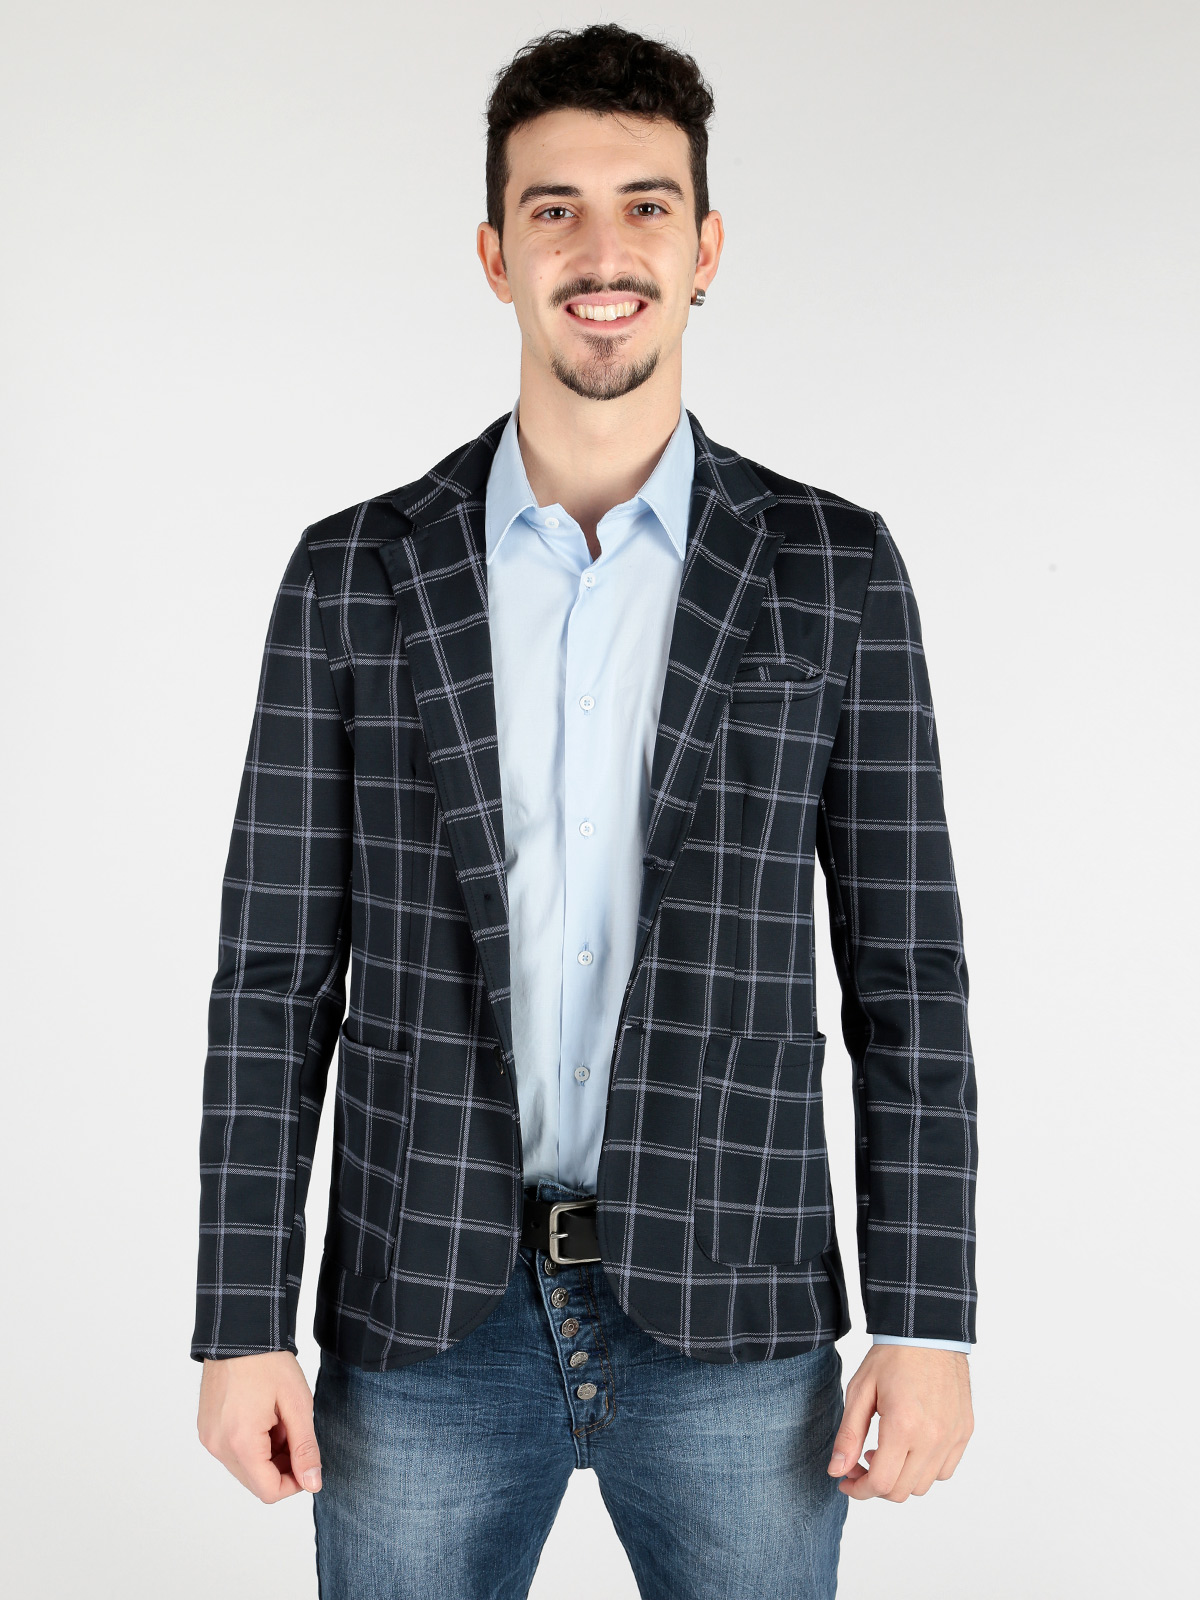 Blazer Plaid Shirt With Pocket